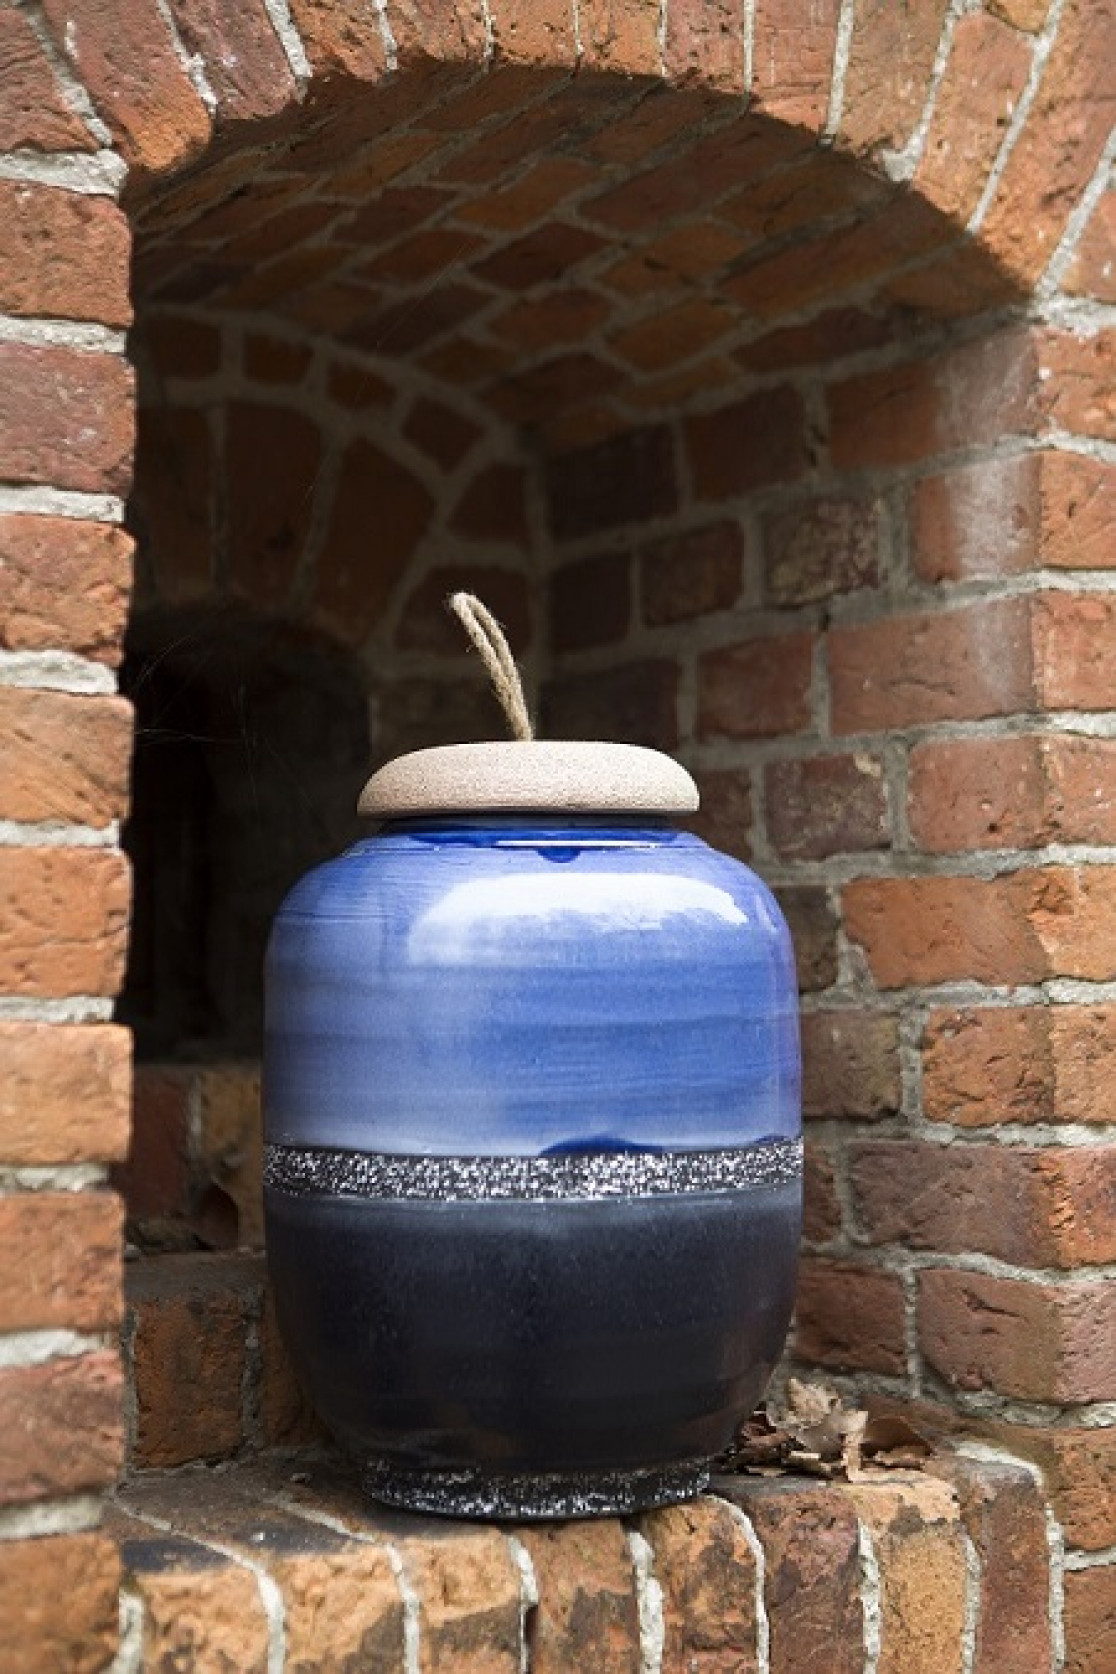 Timeless Ceramic Vases Are The Ultimate Living Room Decoration